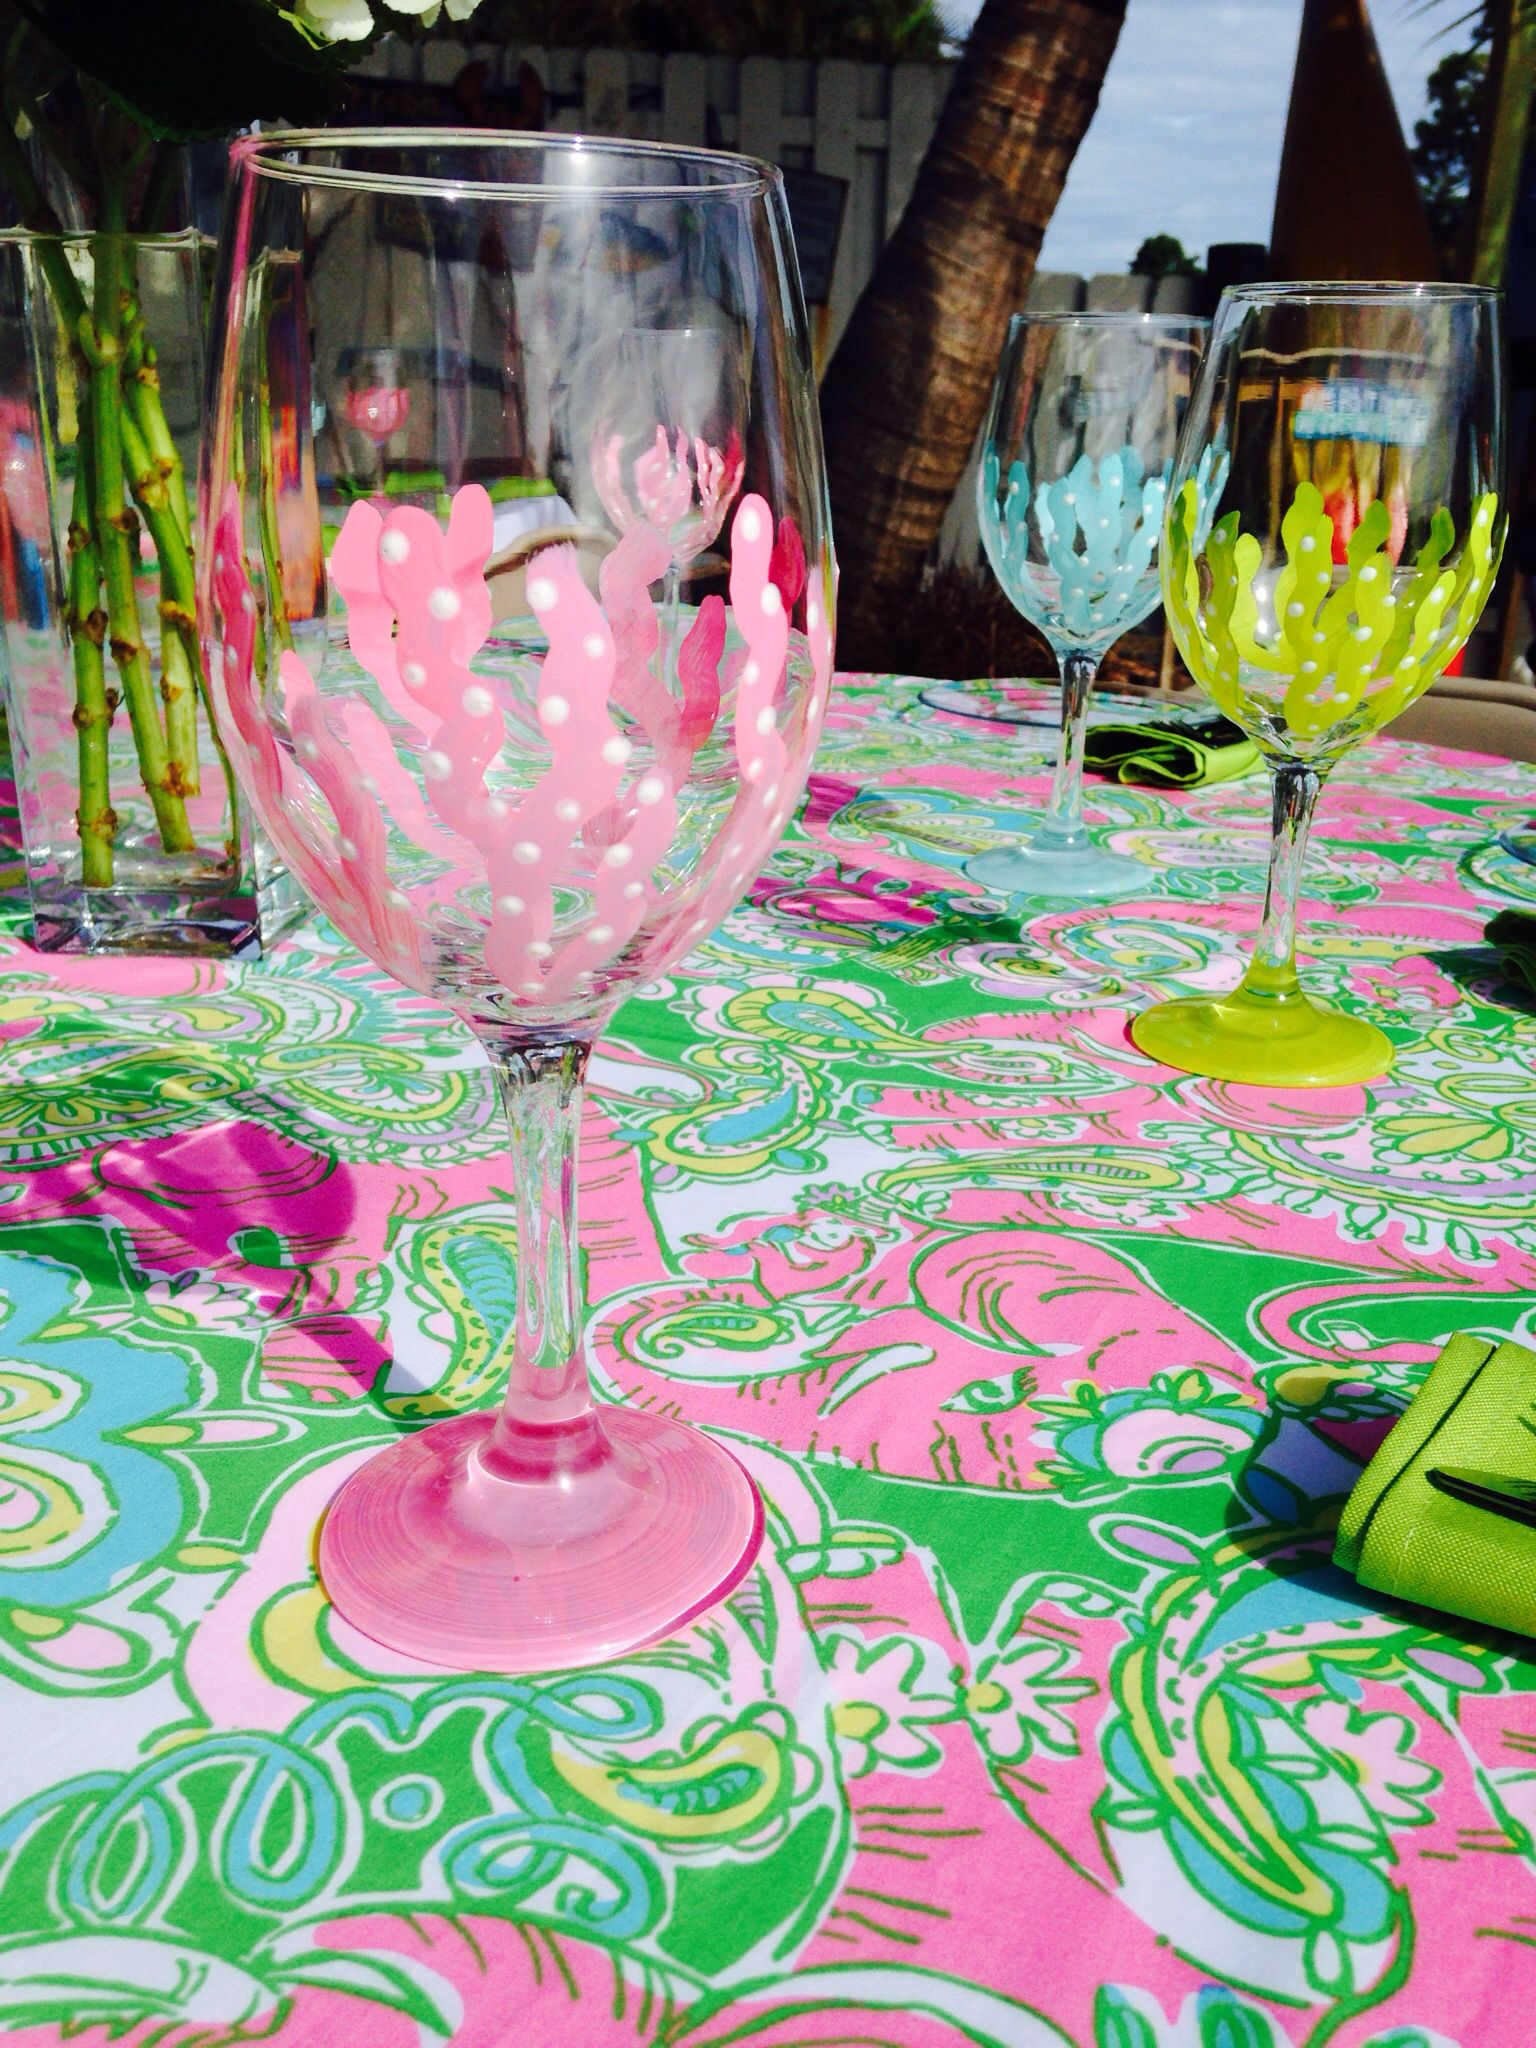 allies most precious lilly pulitzer bridal shower omg wish i coulda been there